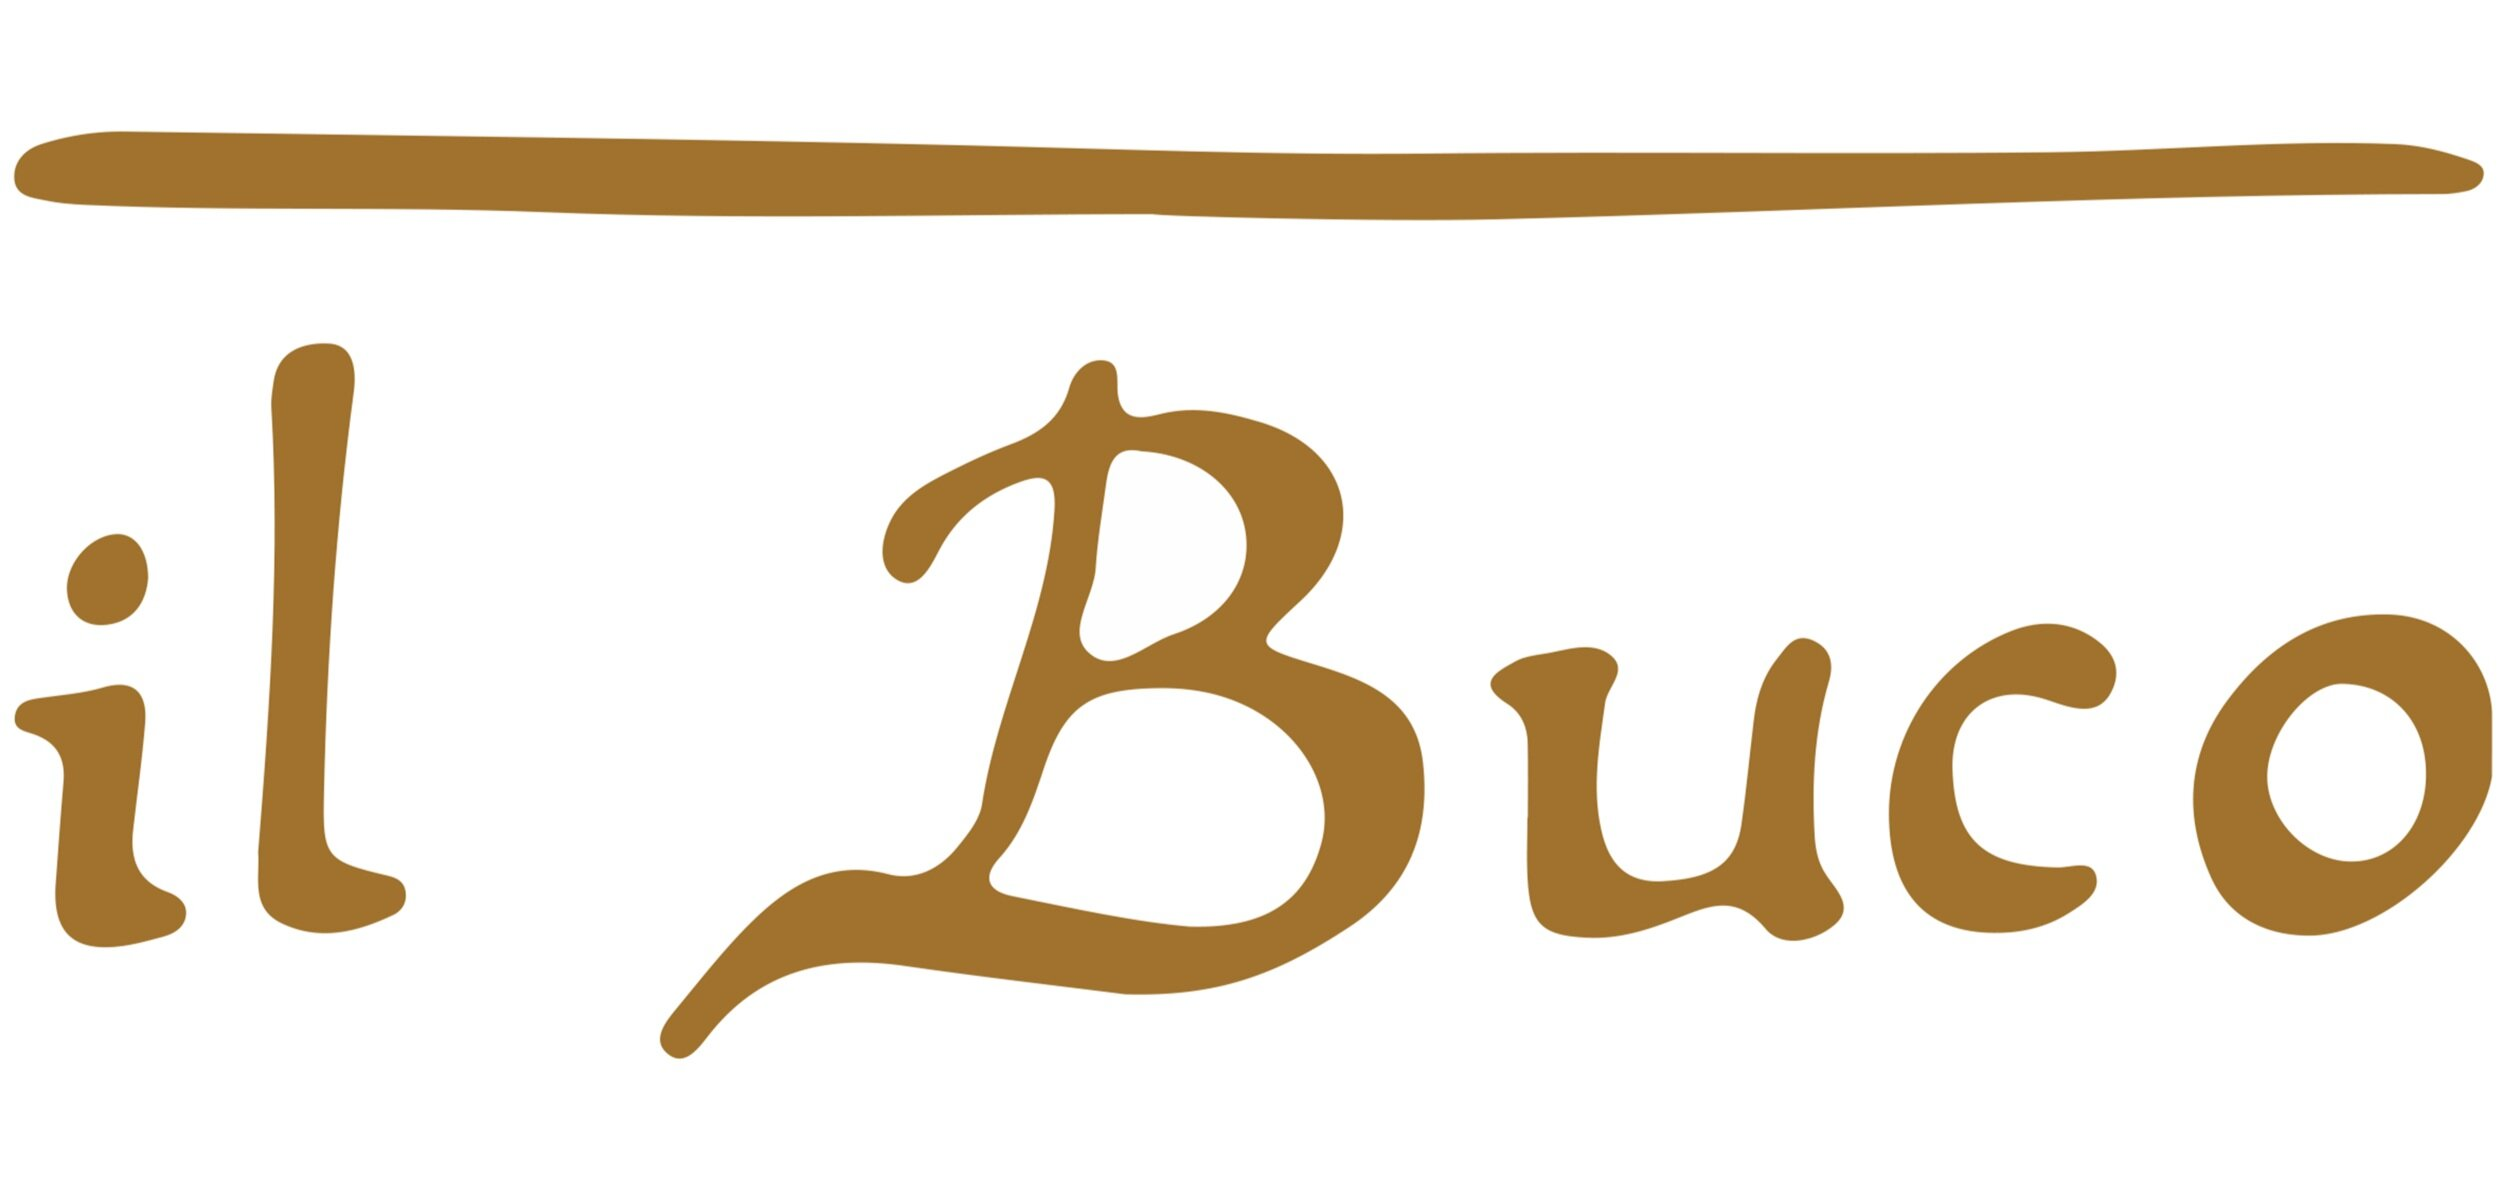 IL BUCO LOGO GOLD.png